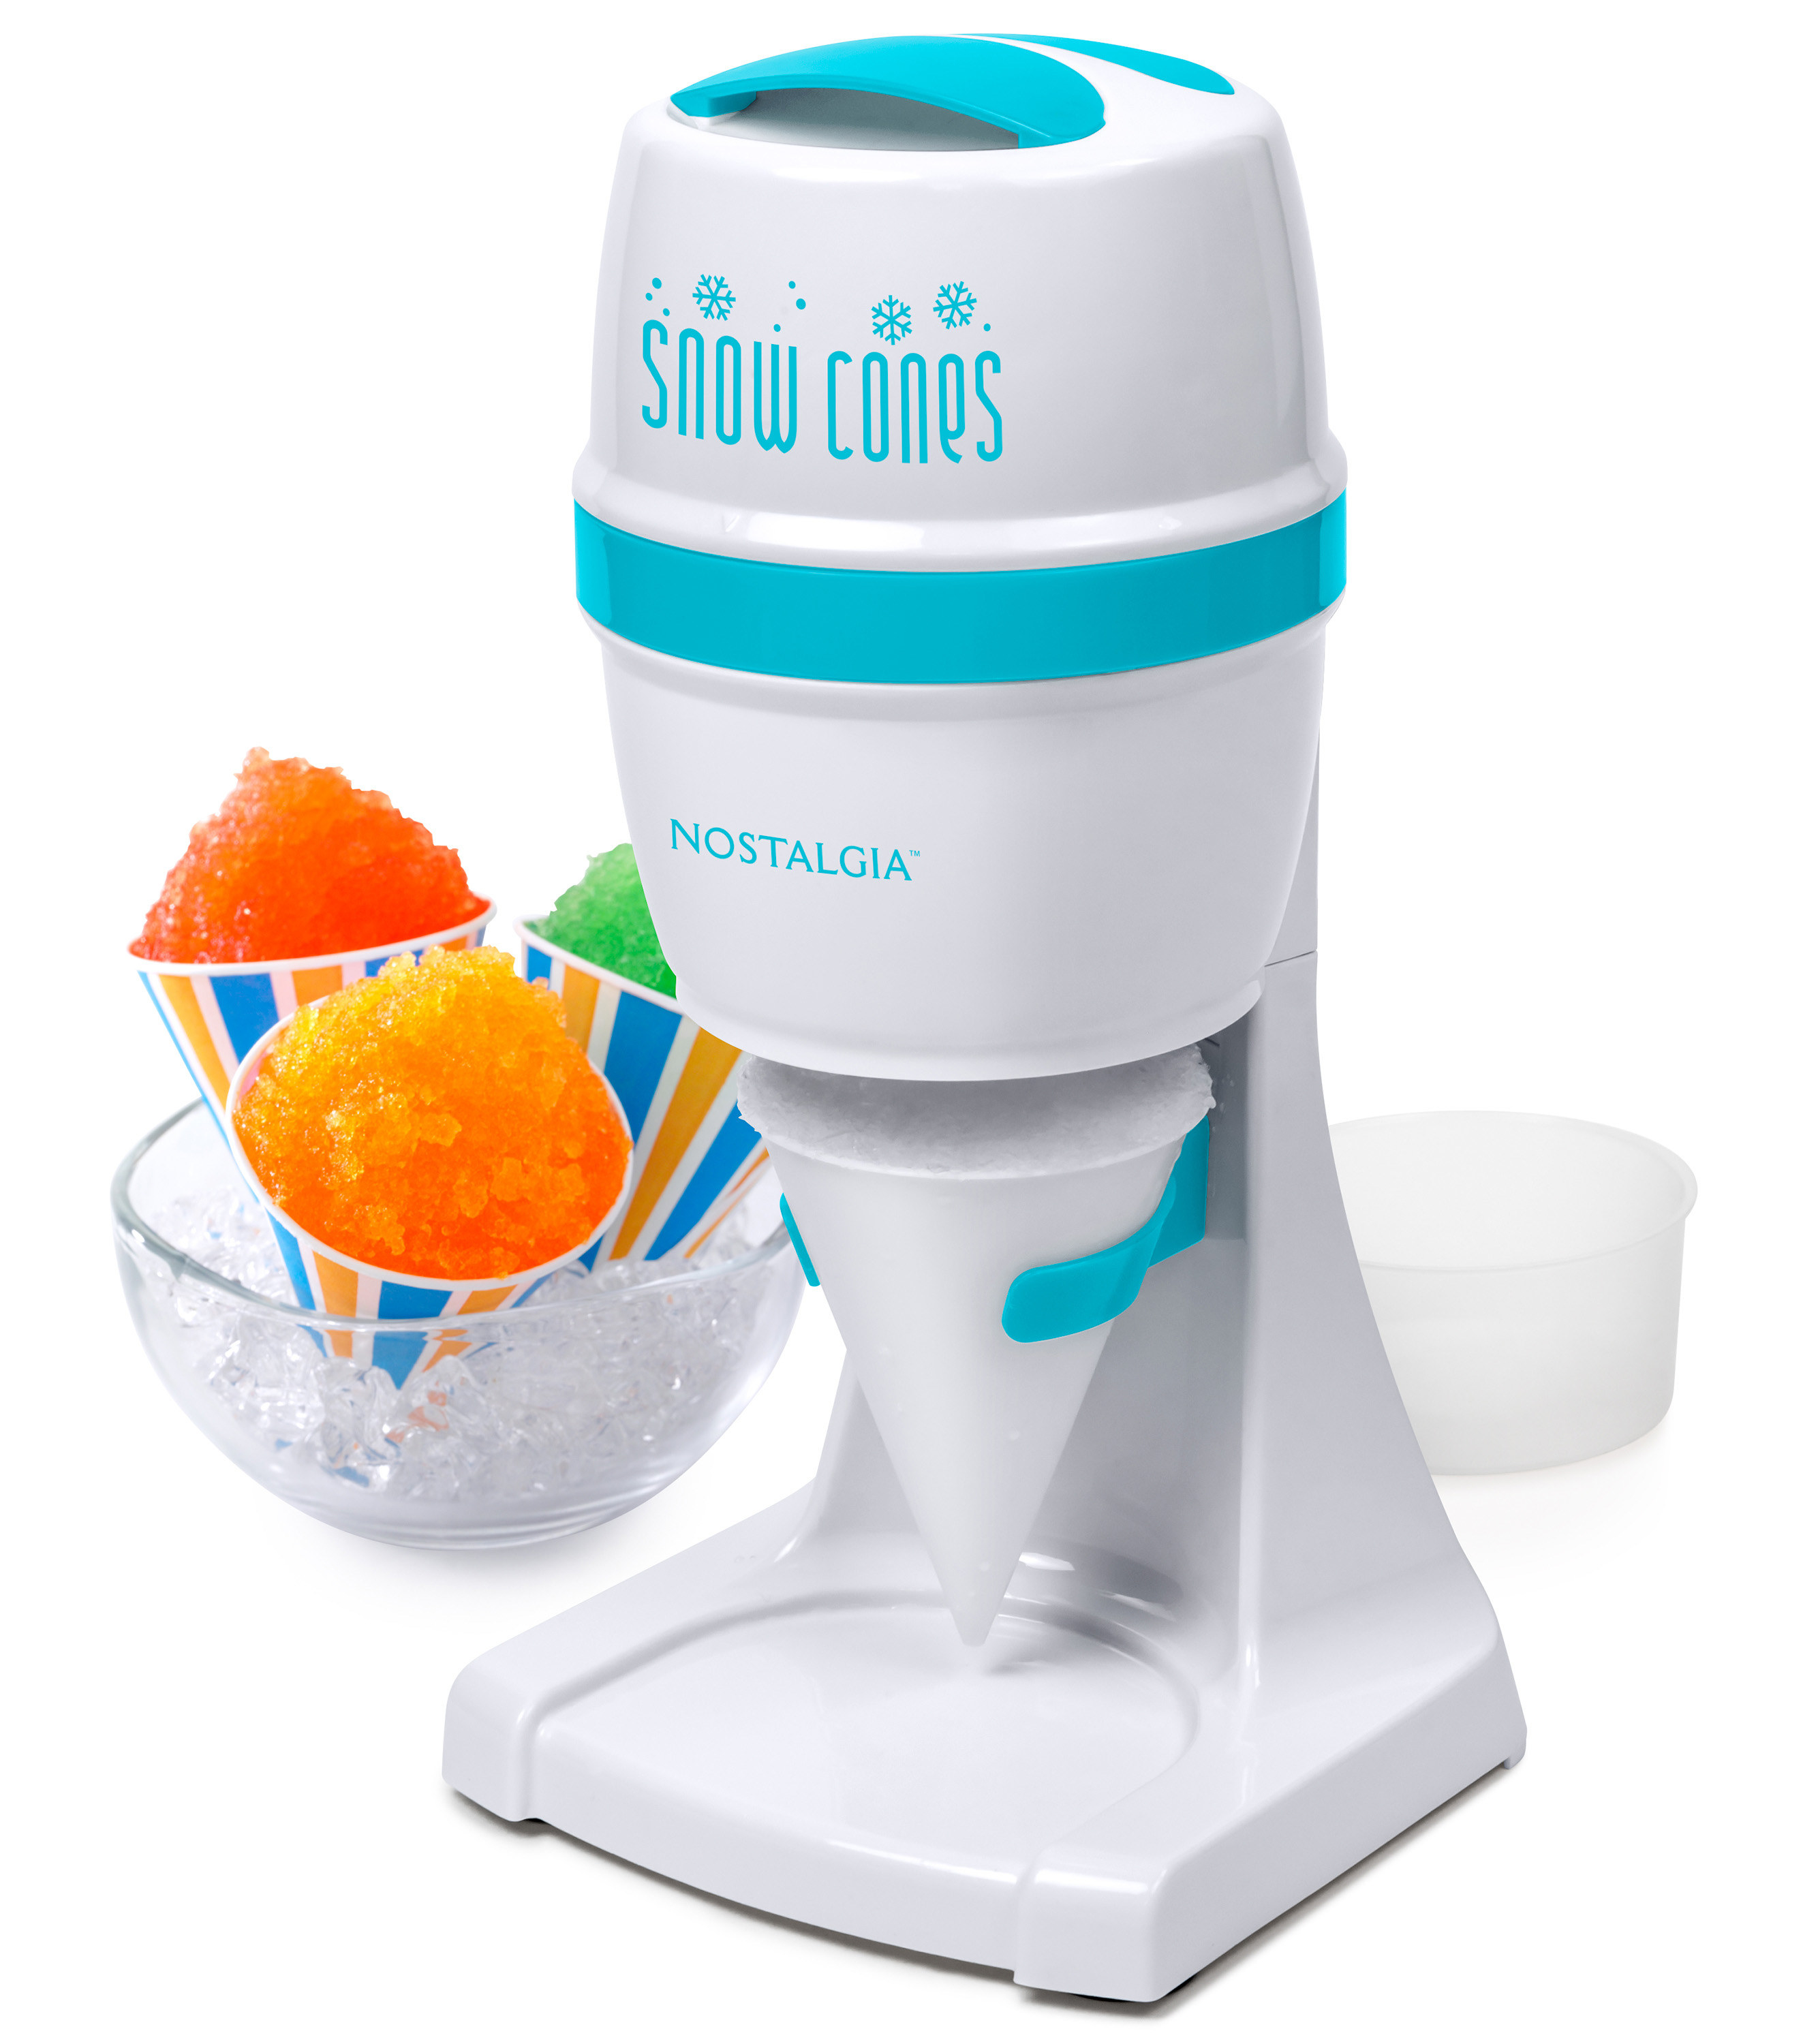 the white and blue snow cone maker